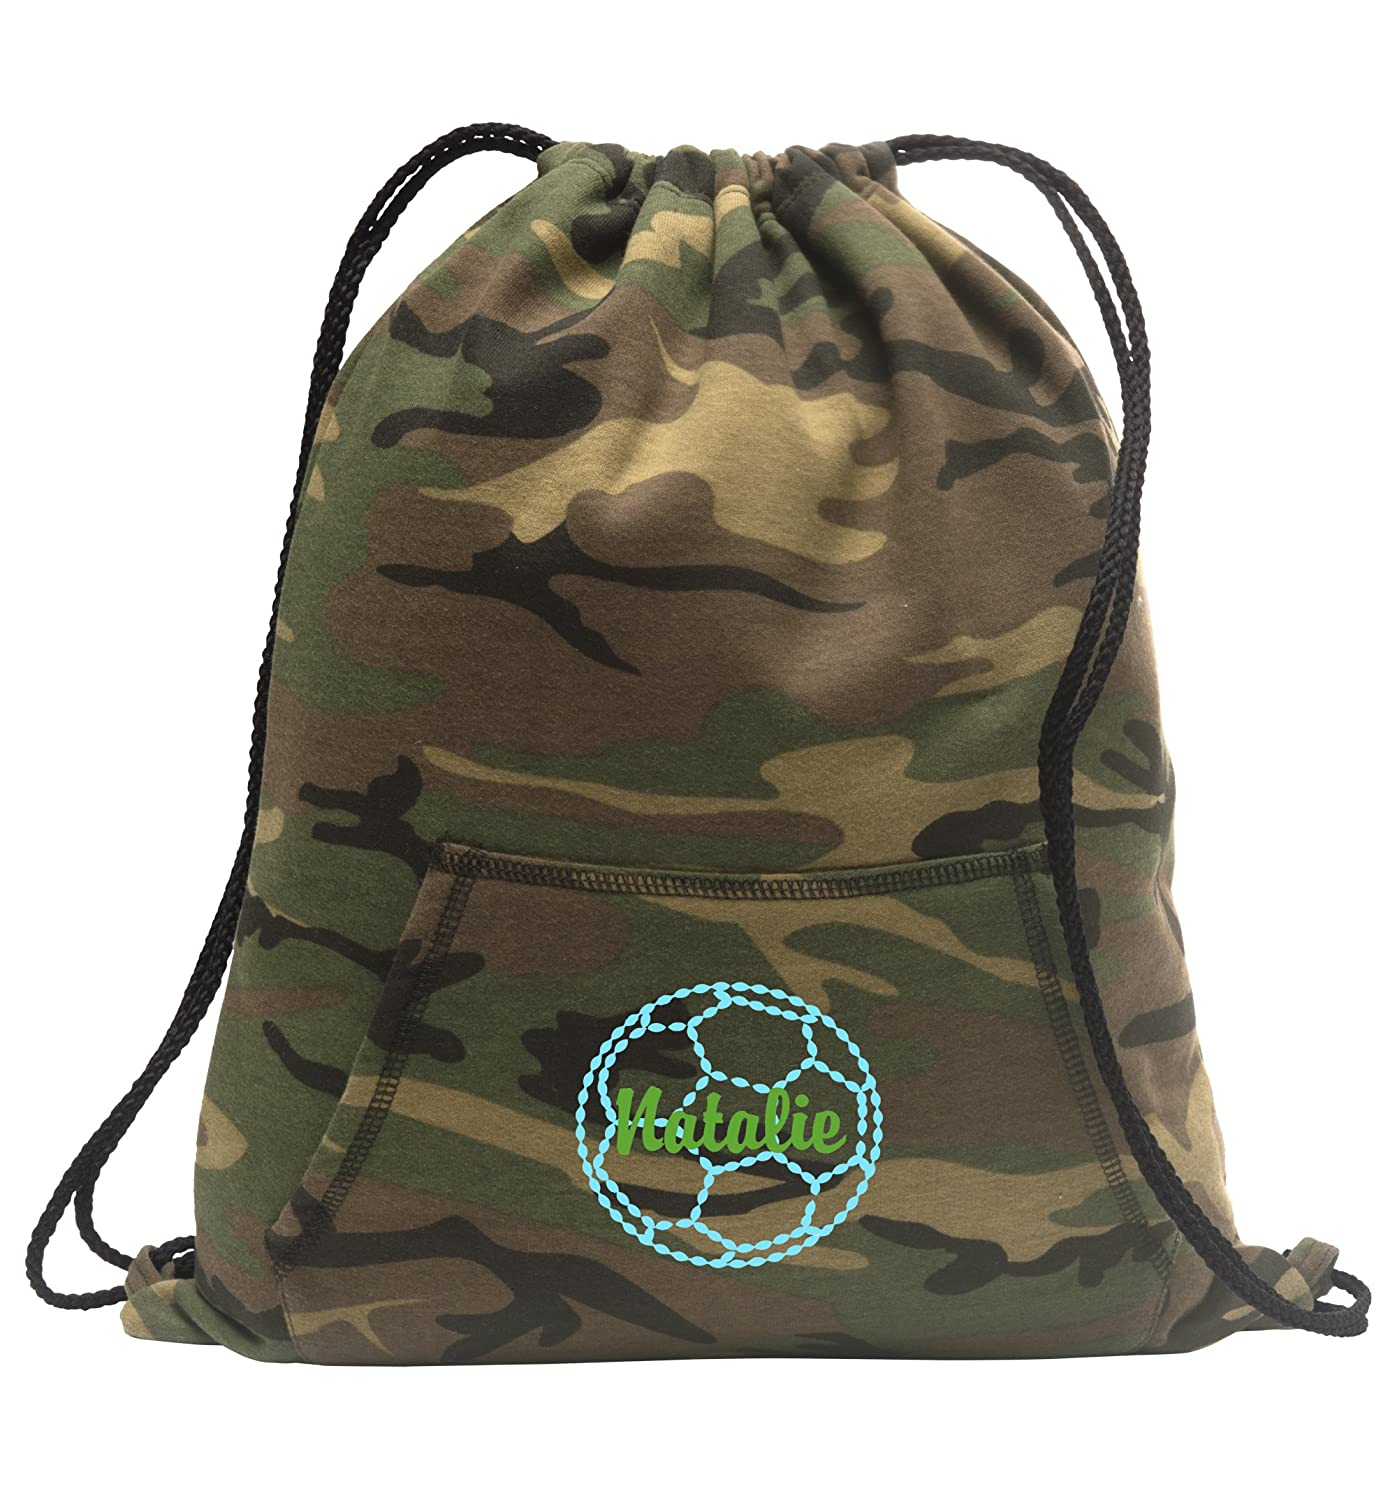 Personalizedサッカー – スウェットシャツCinch Bag with Front Pocket B01LZW3W0N Military Camo Military Camo